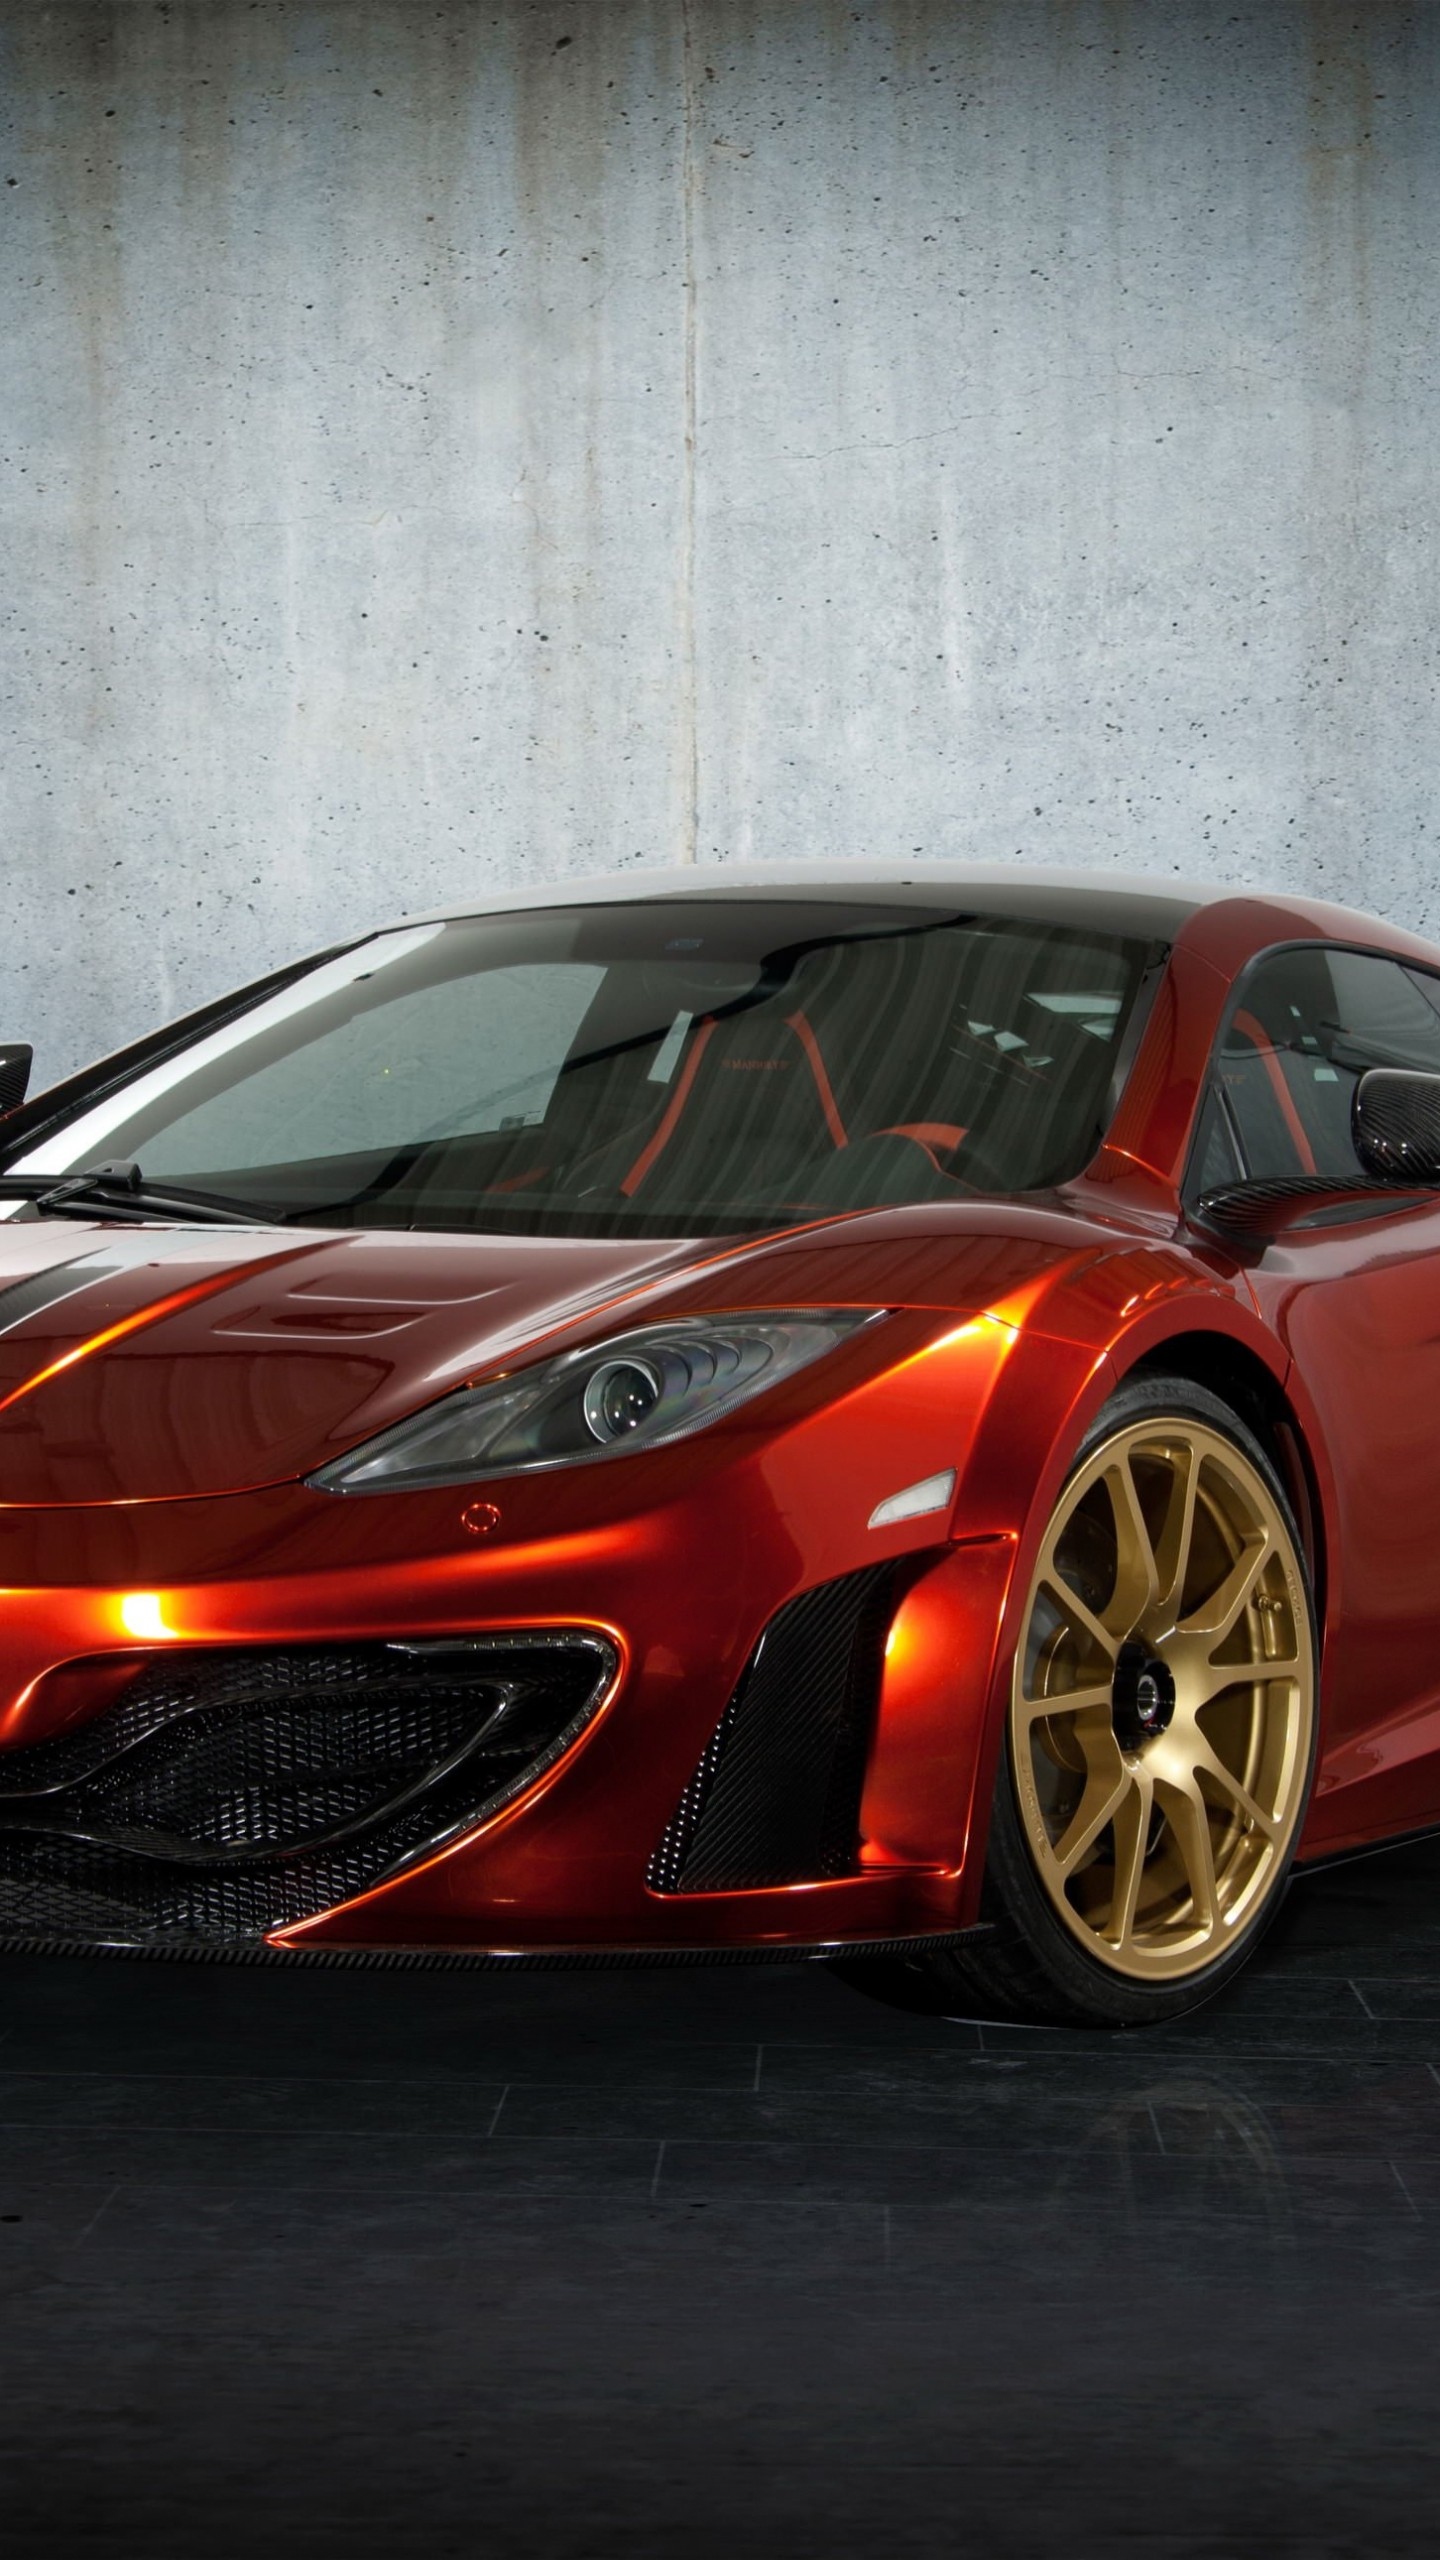 McLaren MP4-12Cf By Mansory Wallpaper for SAMSUNG Galaxy S6